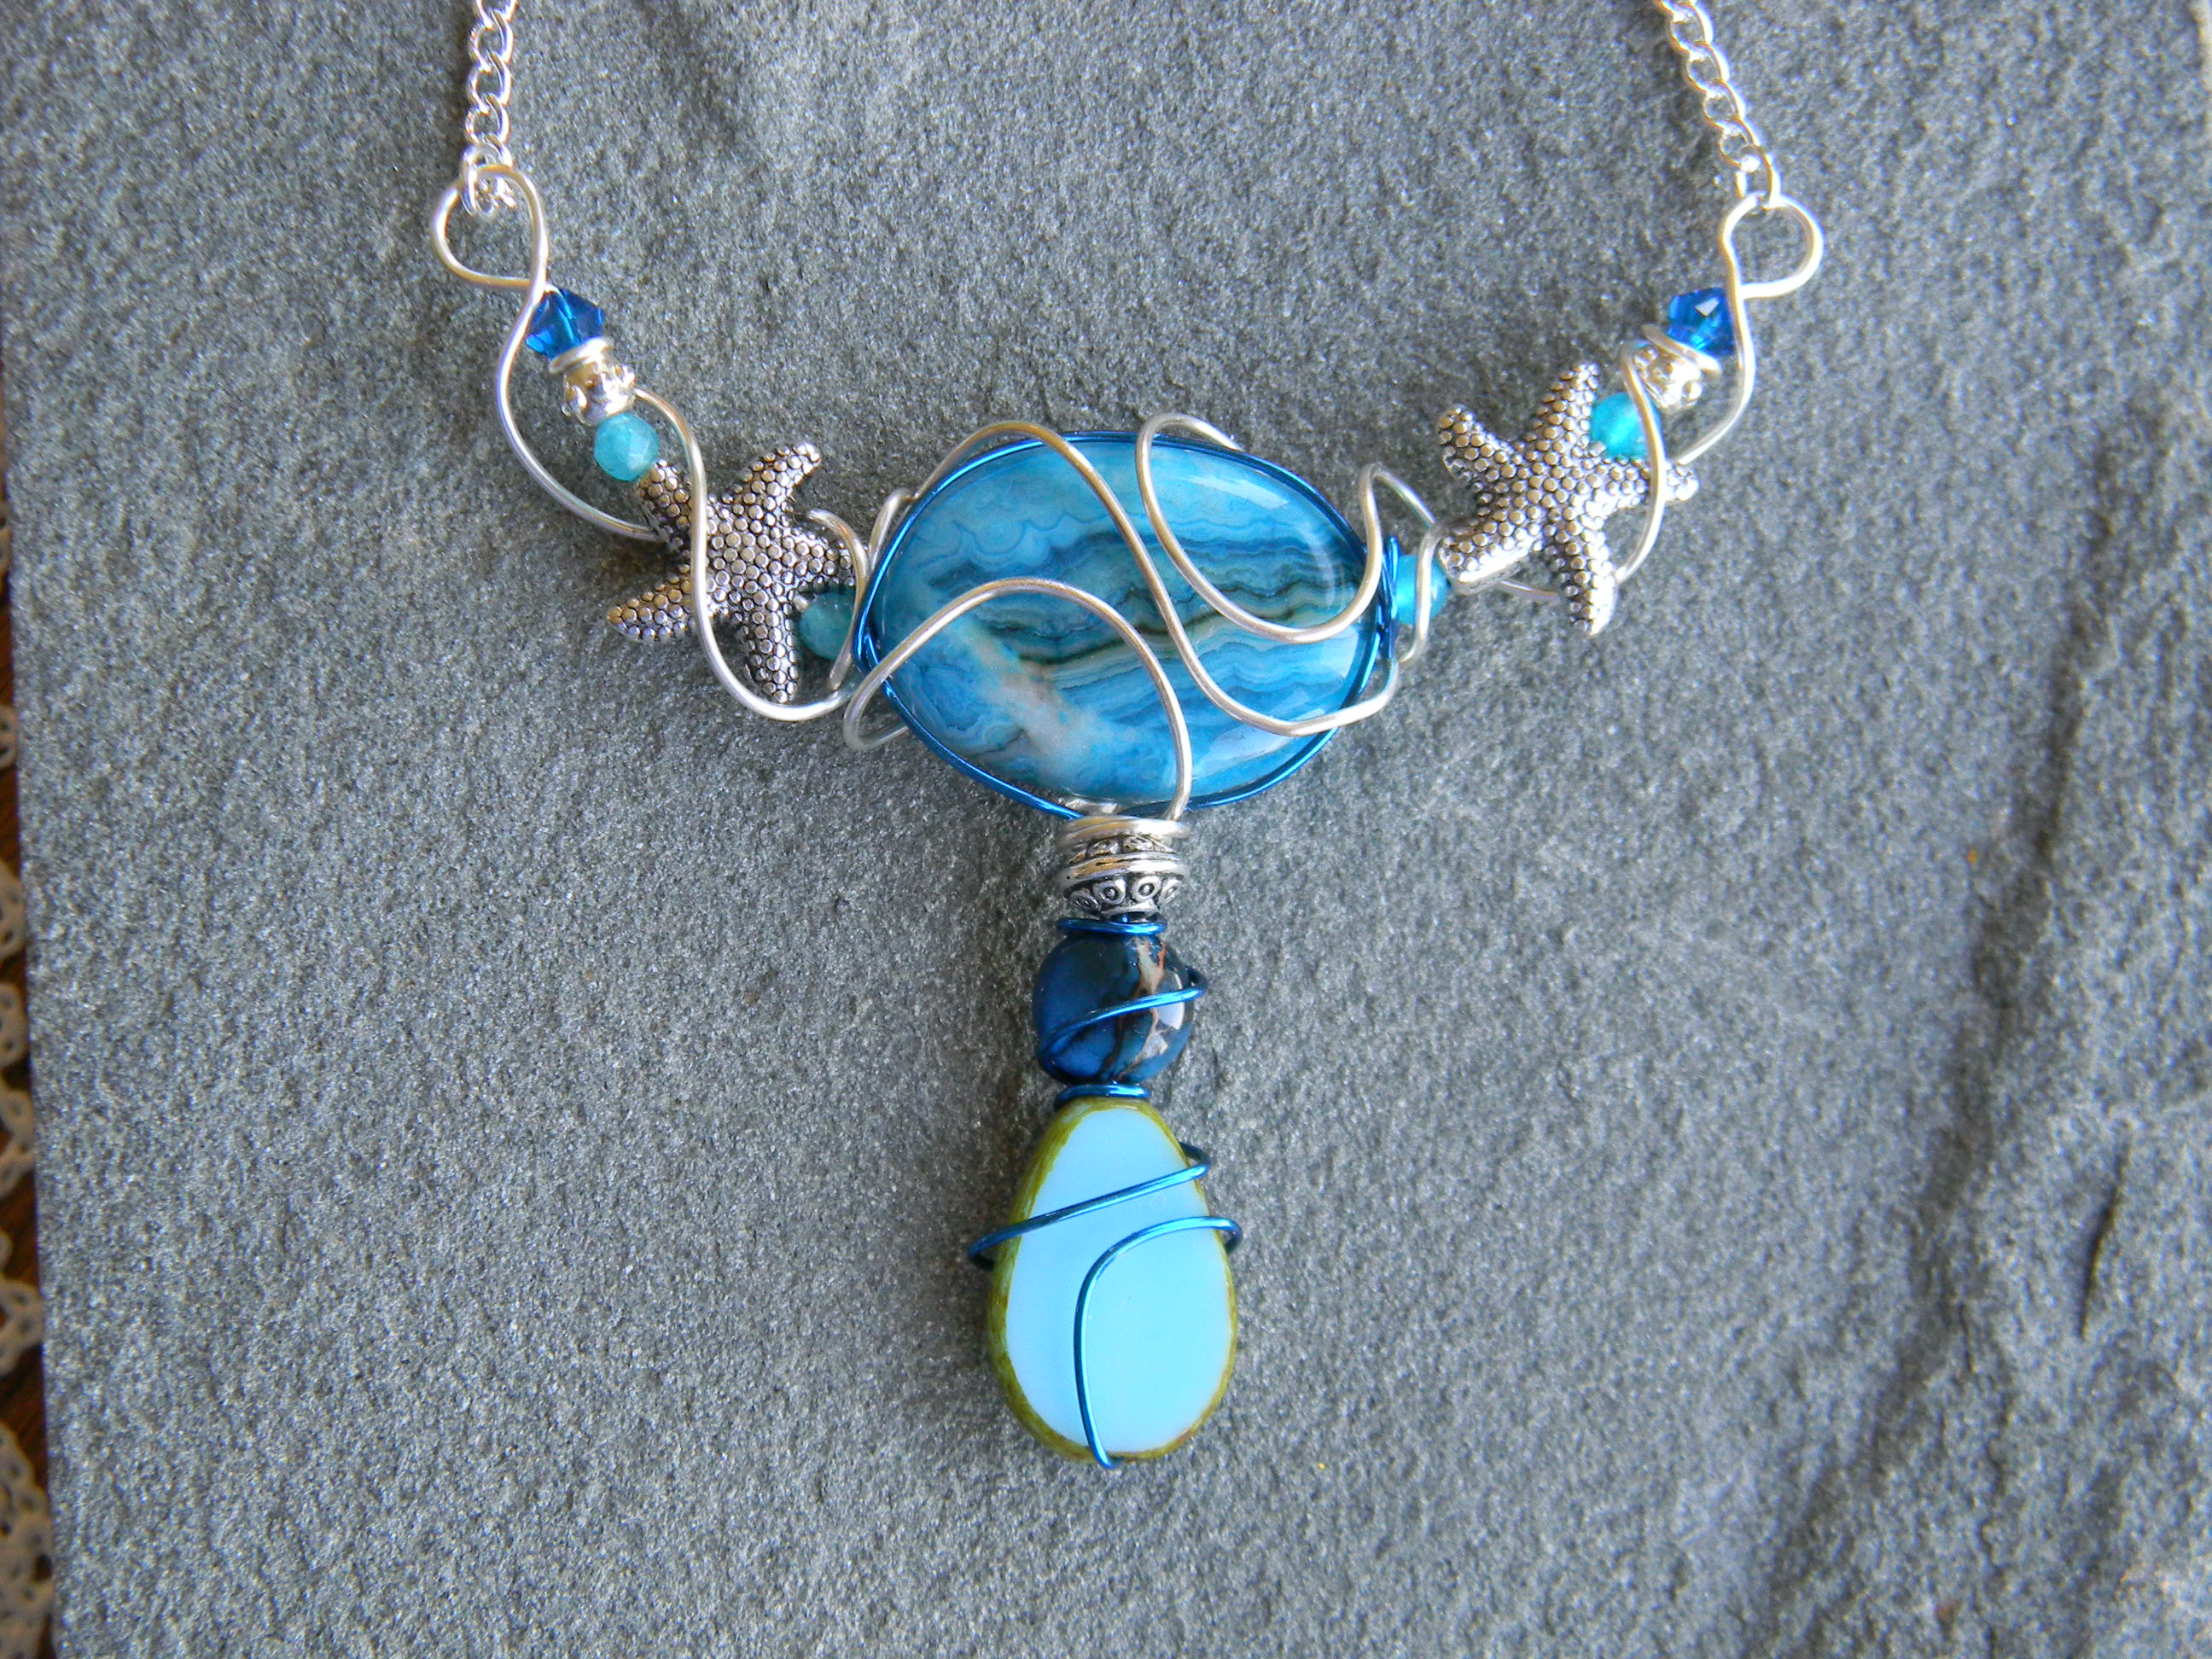 Blue jasper and glass goddess inspired necklace